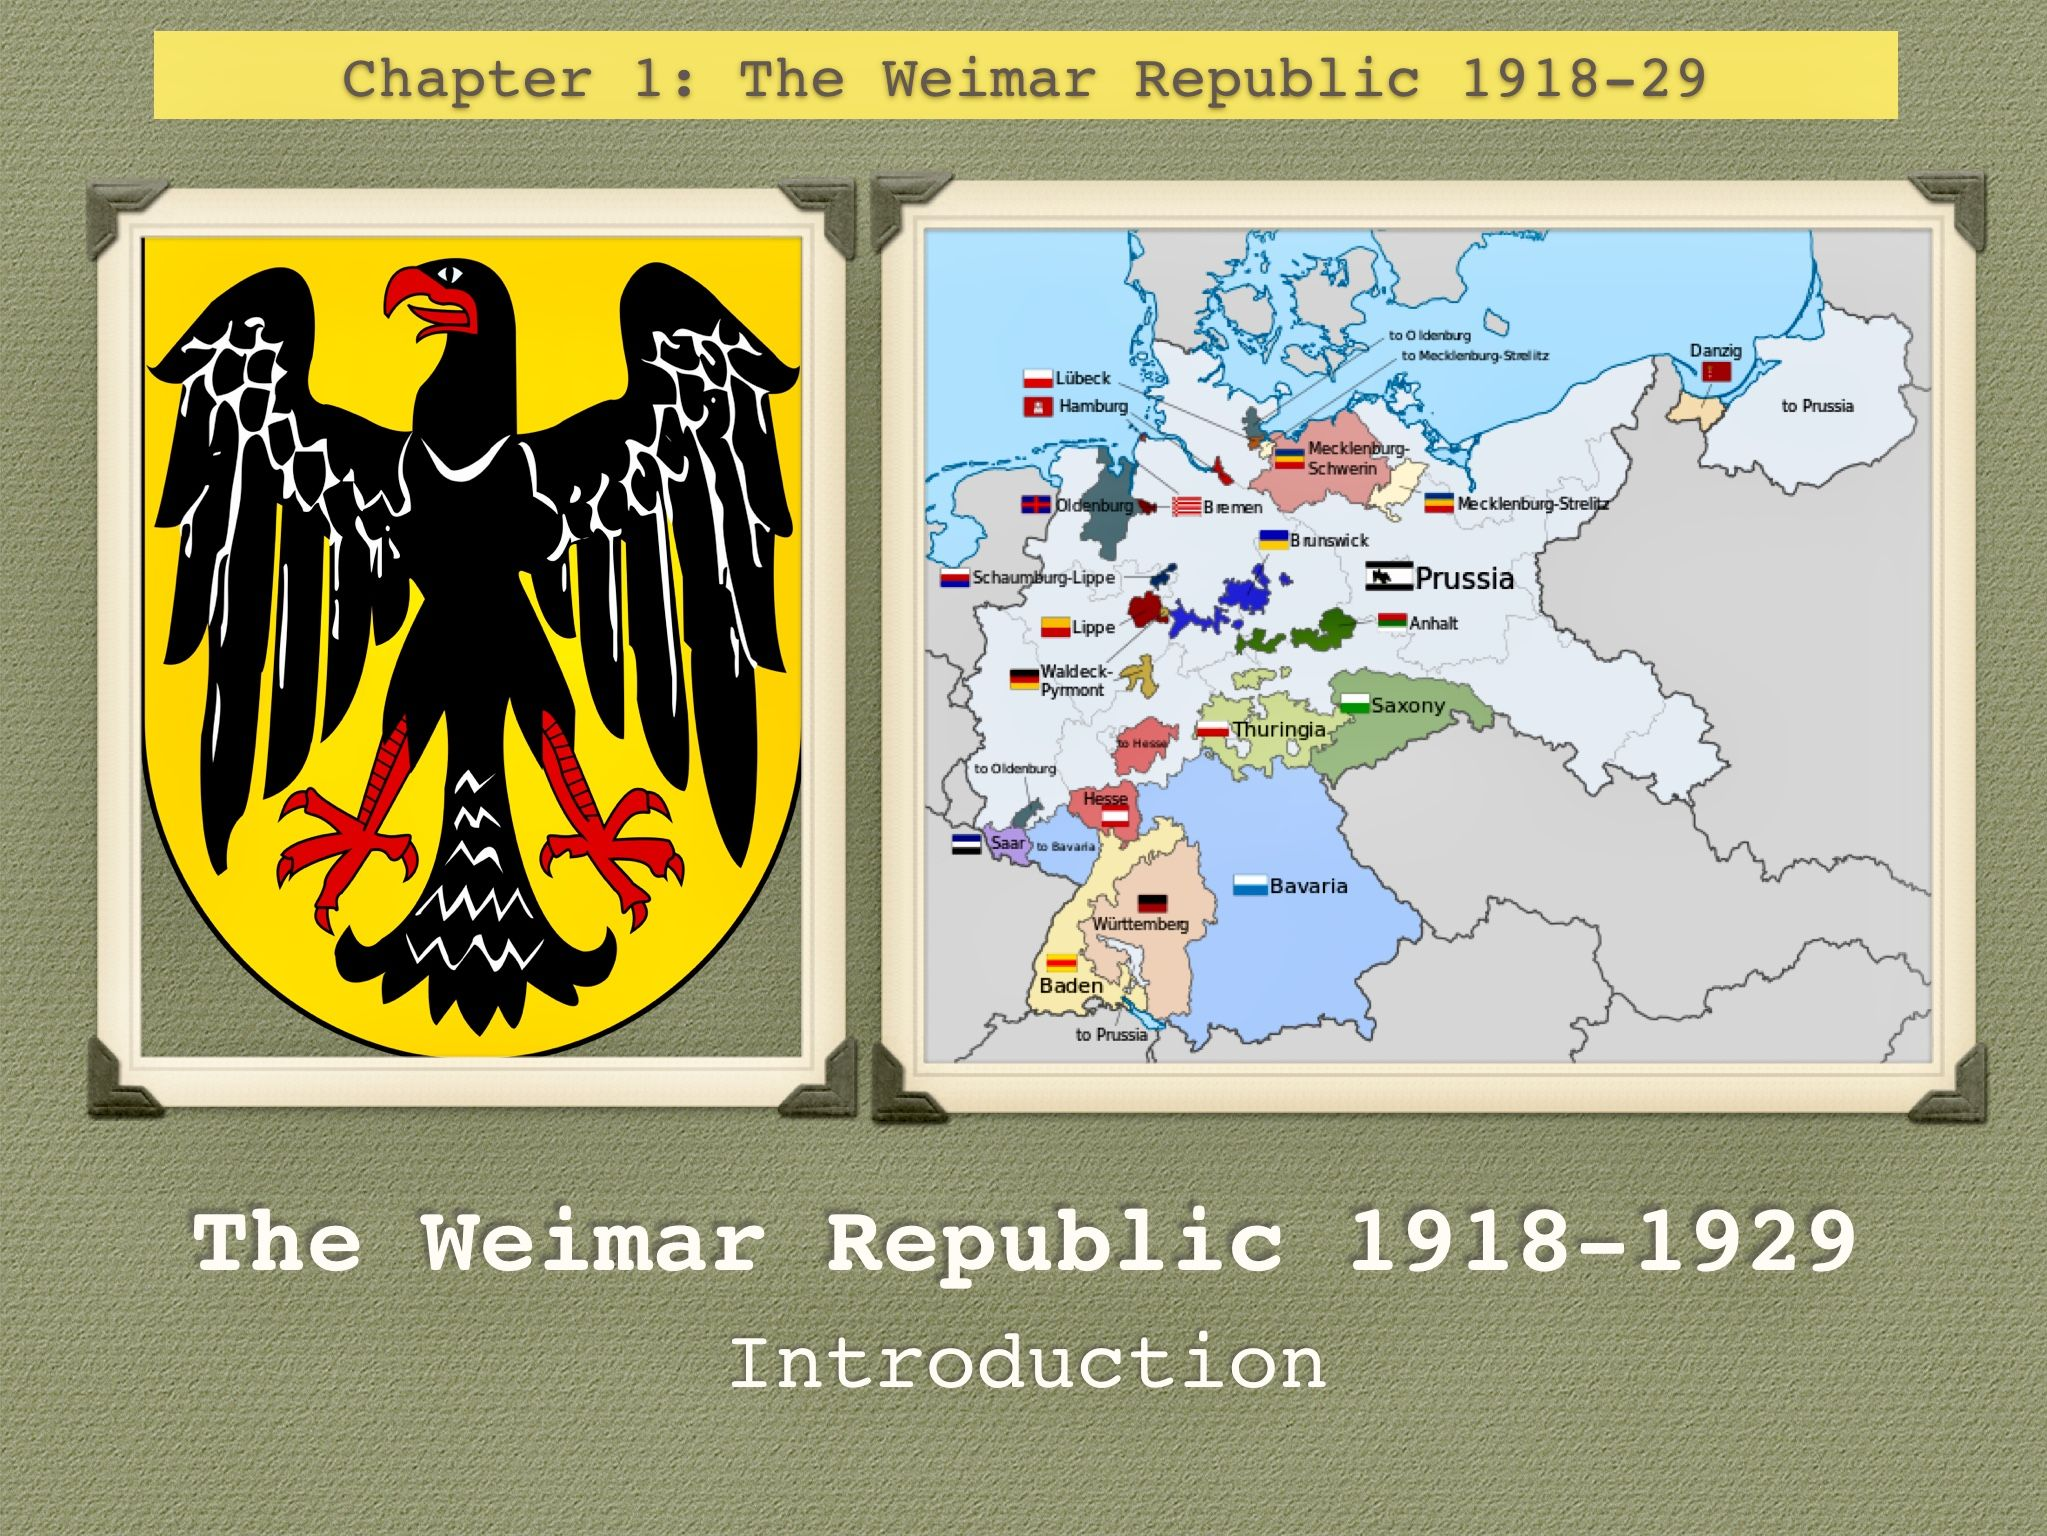 GCSE Weimar Republic Unit 1 1918-1929